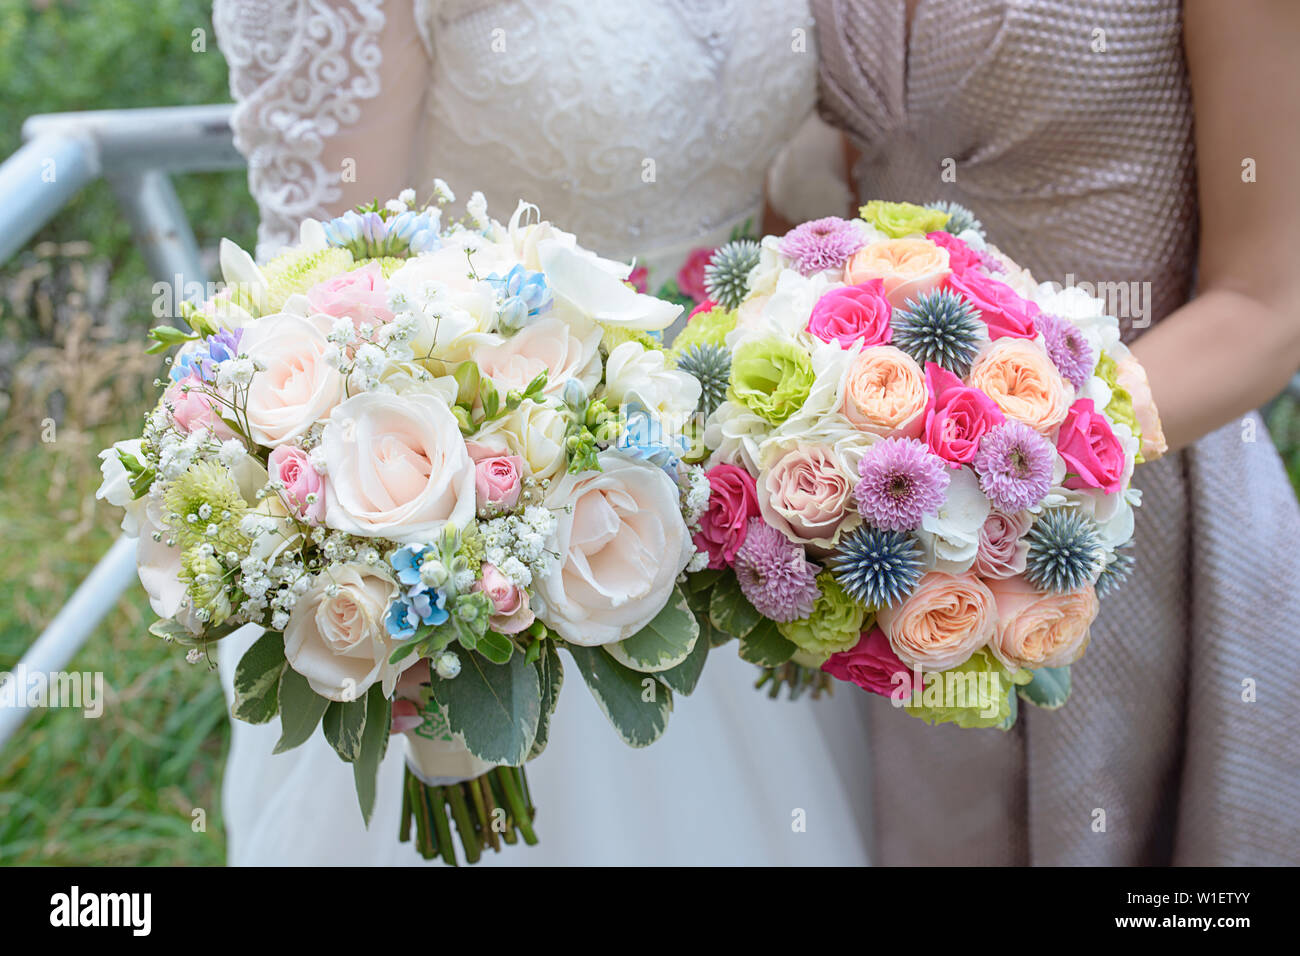 Bride And Maid Of Honor Or Bridesmaid Holding Large Colorful And Sophisticated Wedding Bouquets Caucasian Young Women Holding Flower Arrangements Stock Photo Alamy